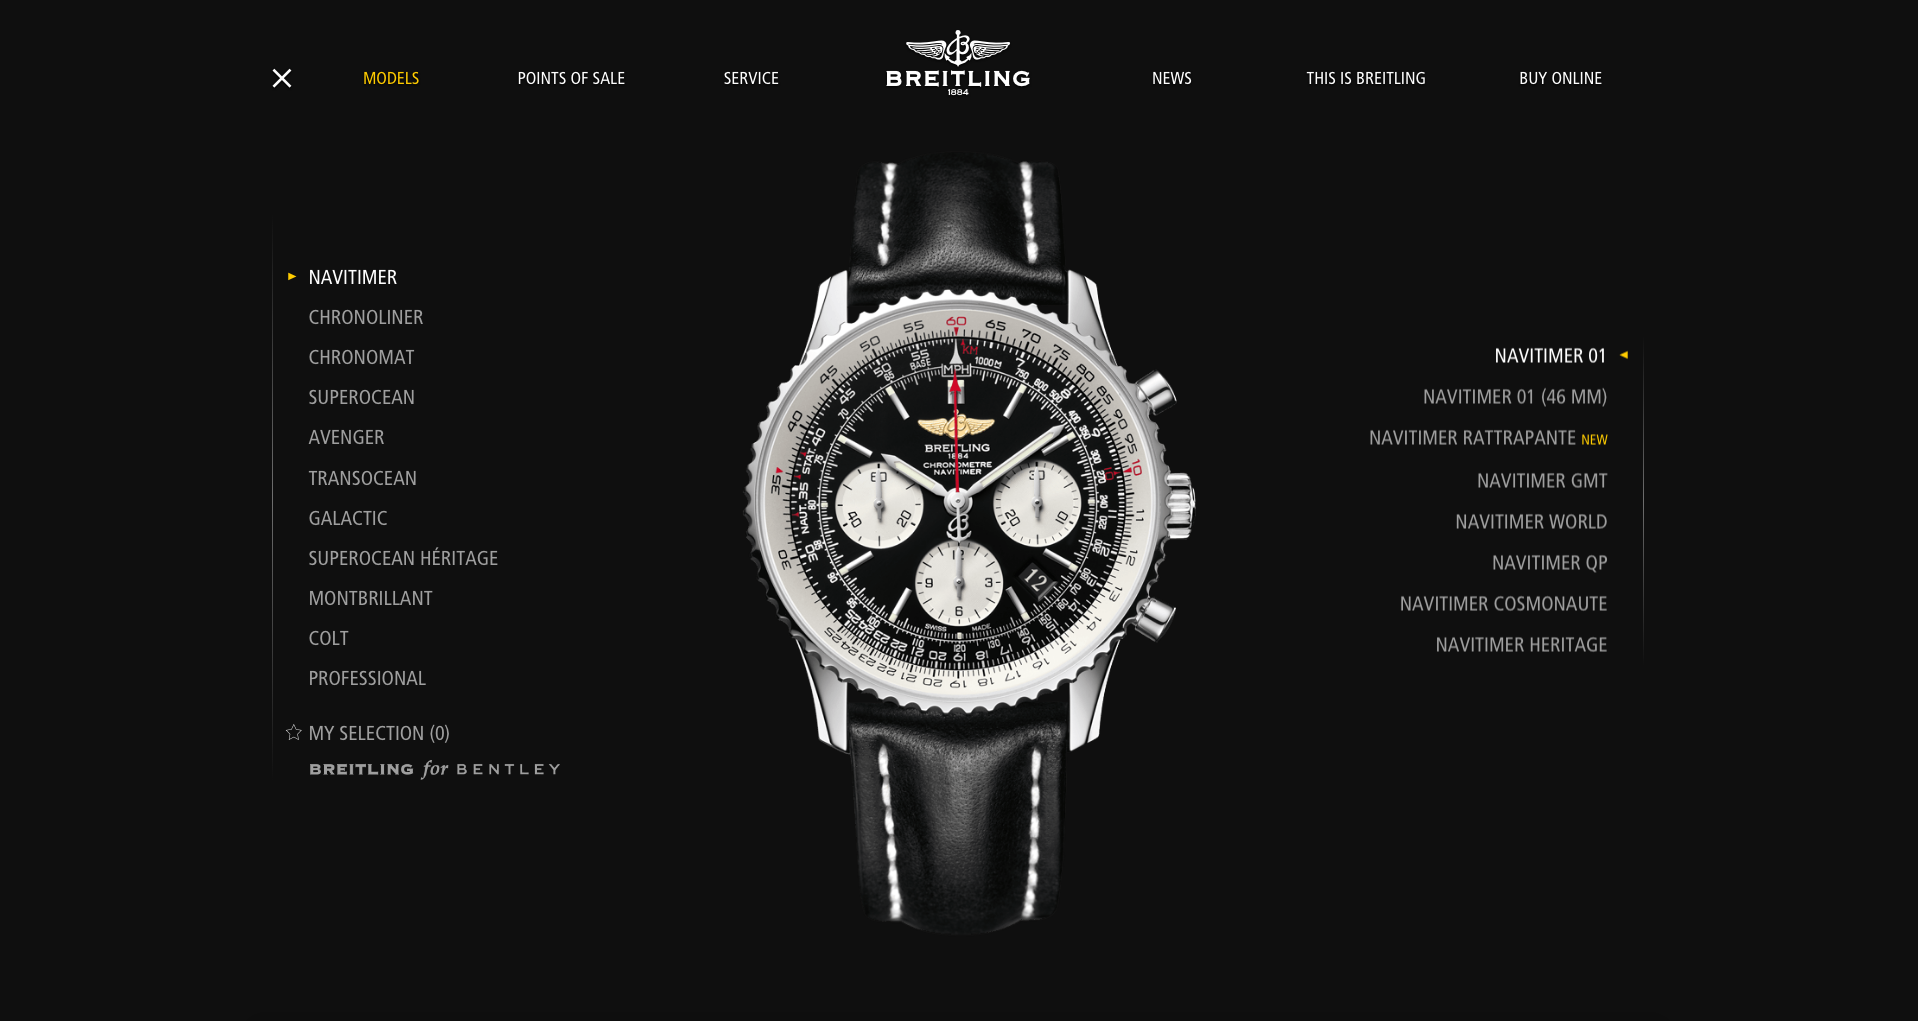 Breitling decided on a black background to make their watch designs stand out